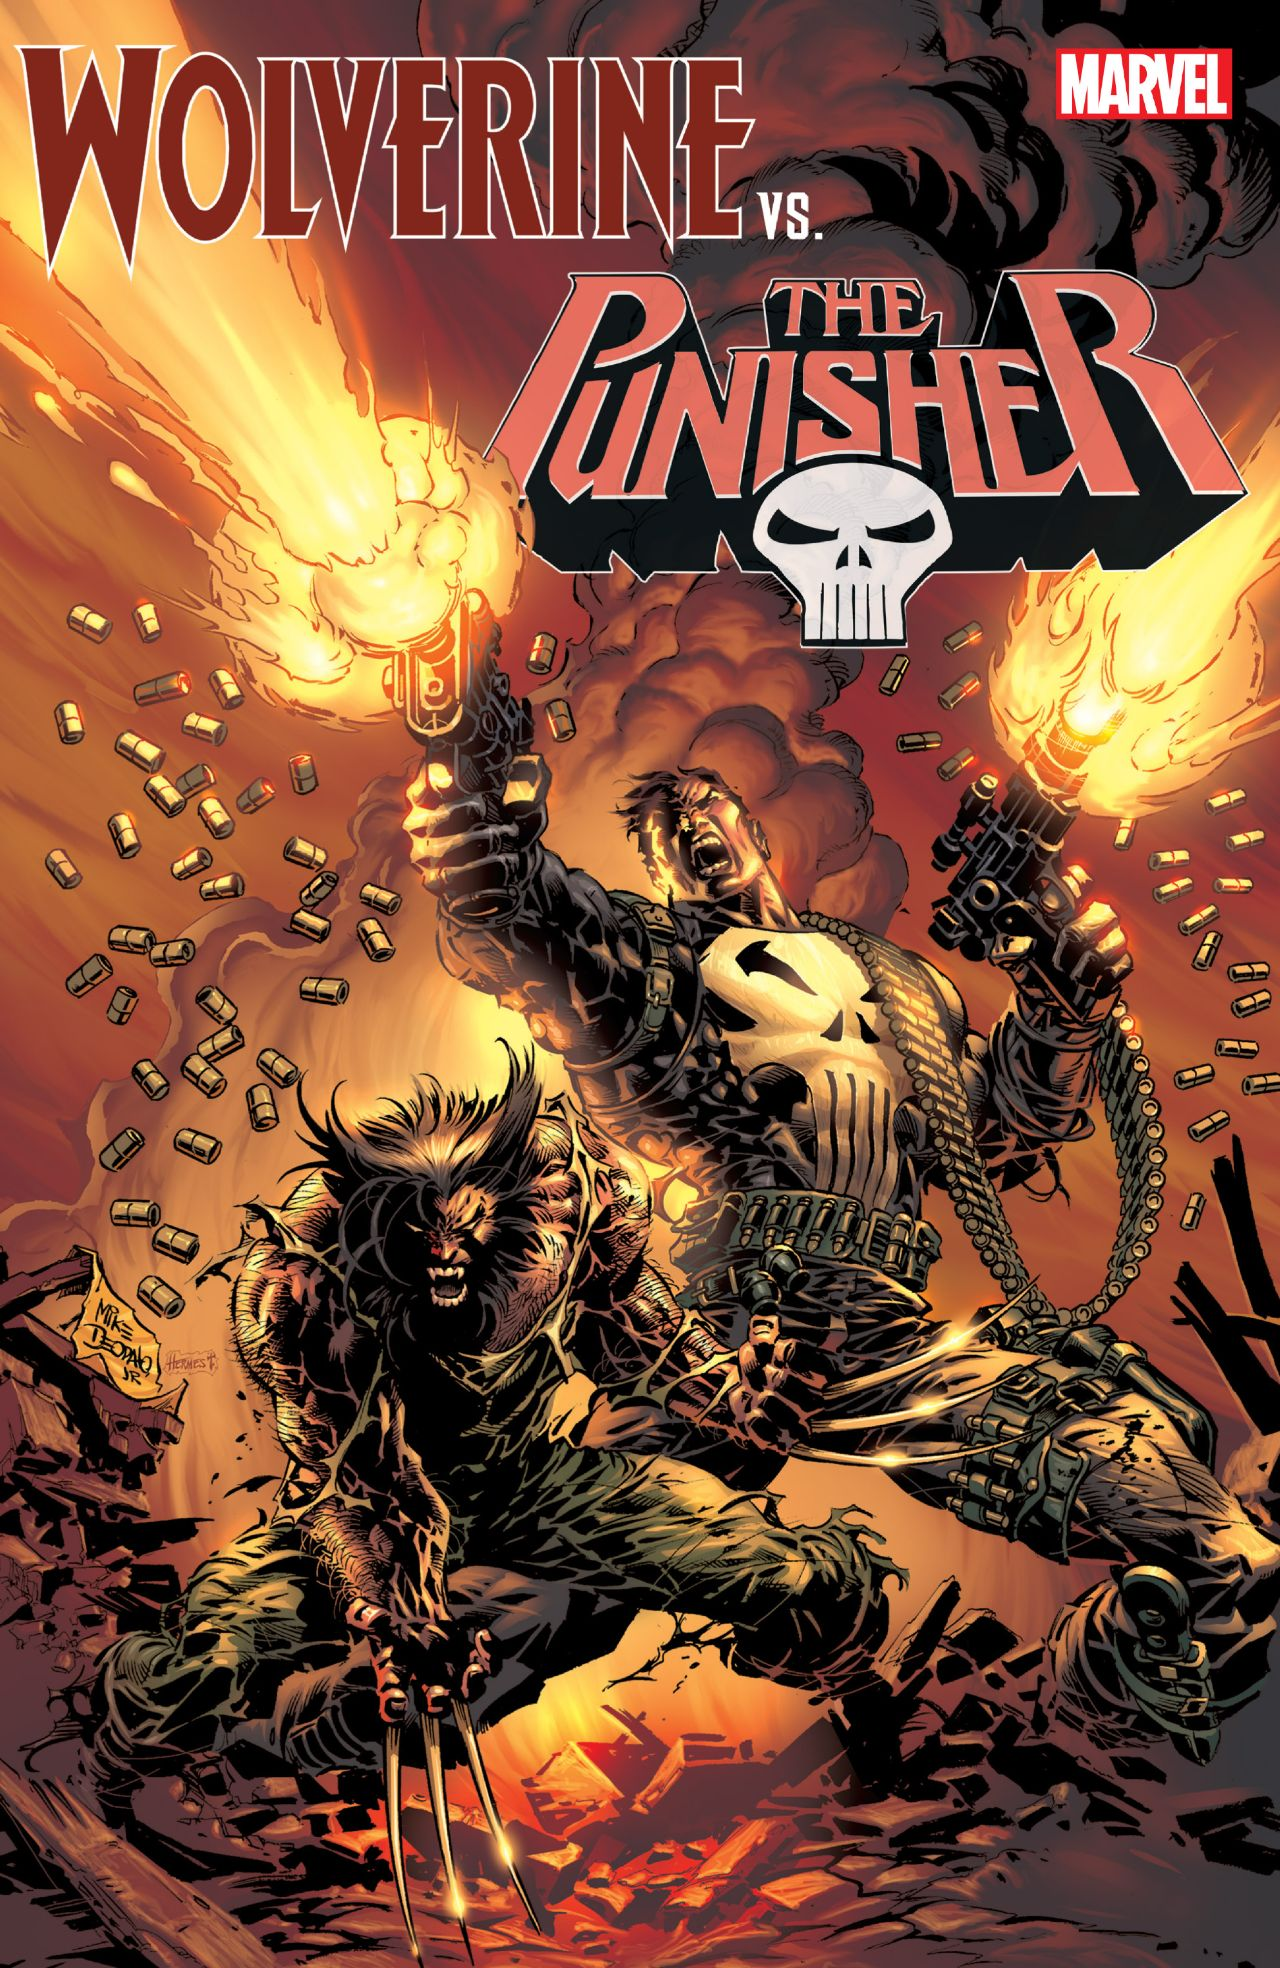 Wolverine vs. The Punisher Review